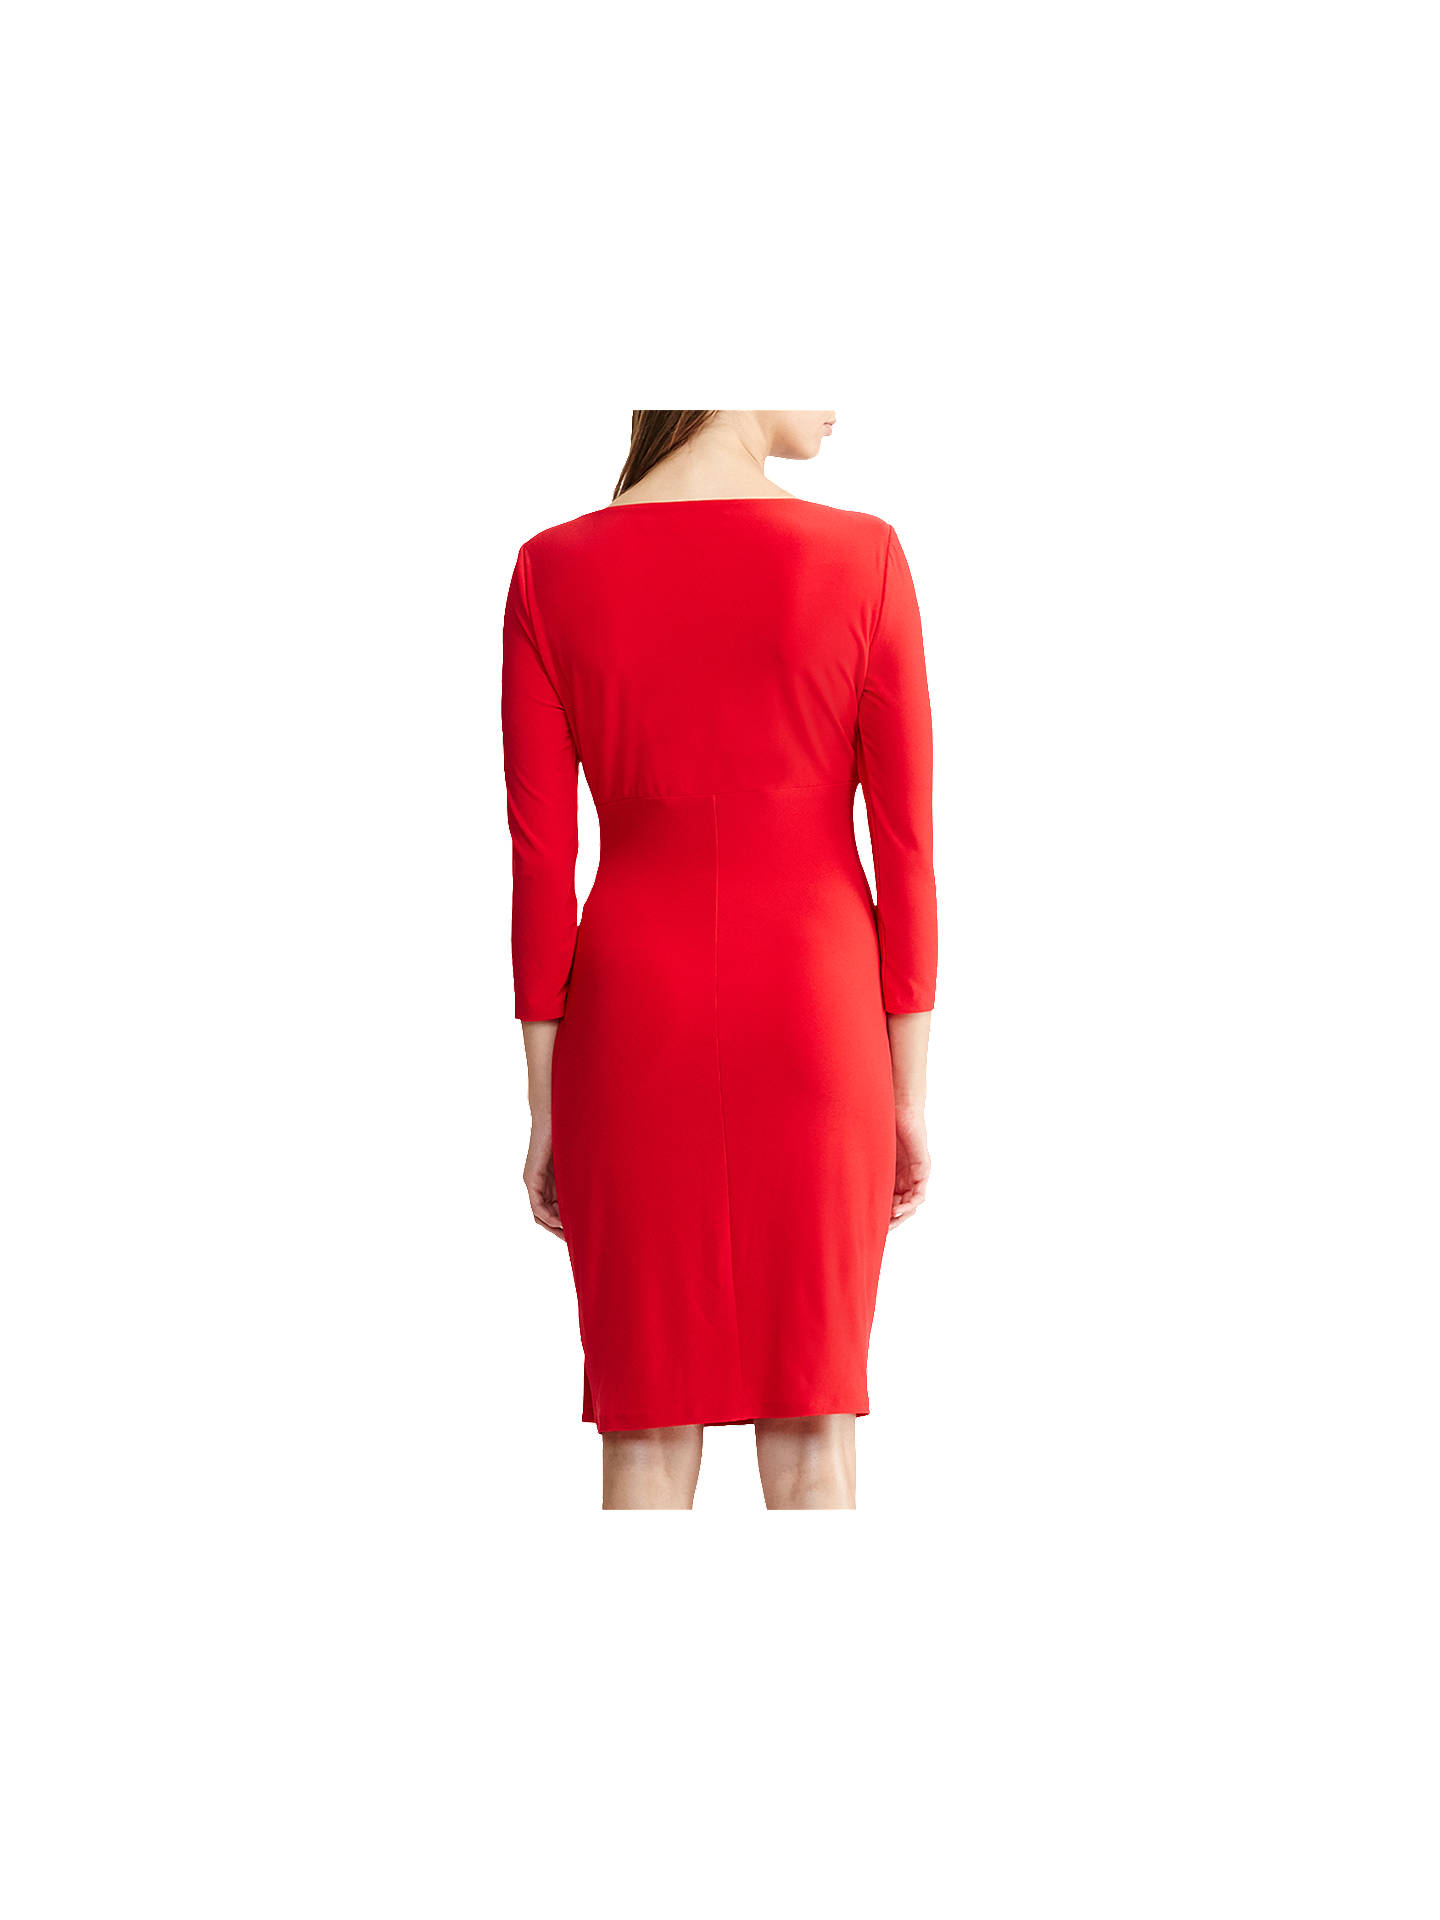 BuyPolo Ralph Lauren Electa Ruched Jersey Dress, Orient Red, 6 Online at johnlewis.com